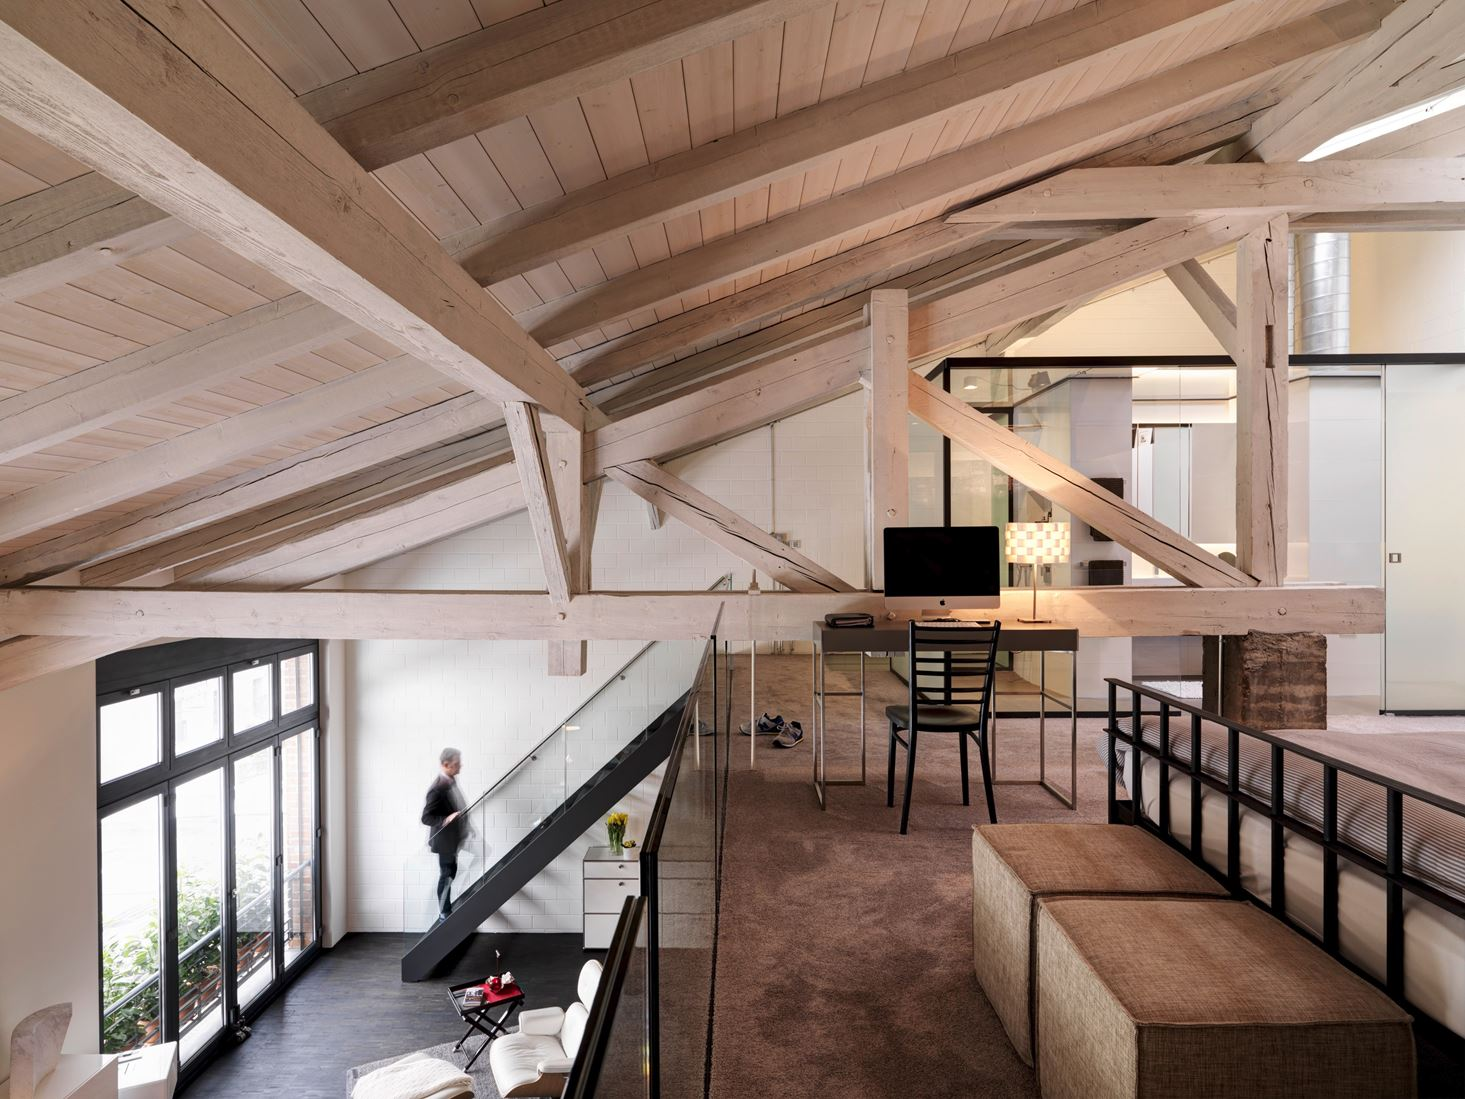 Top Un loft con un suggestivo tetto in legno - Mansarda.it WF76